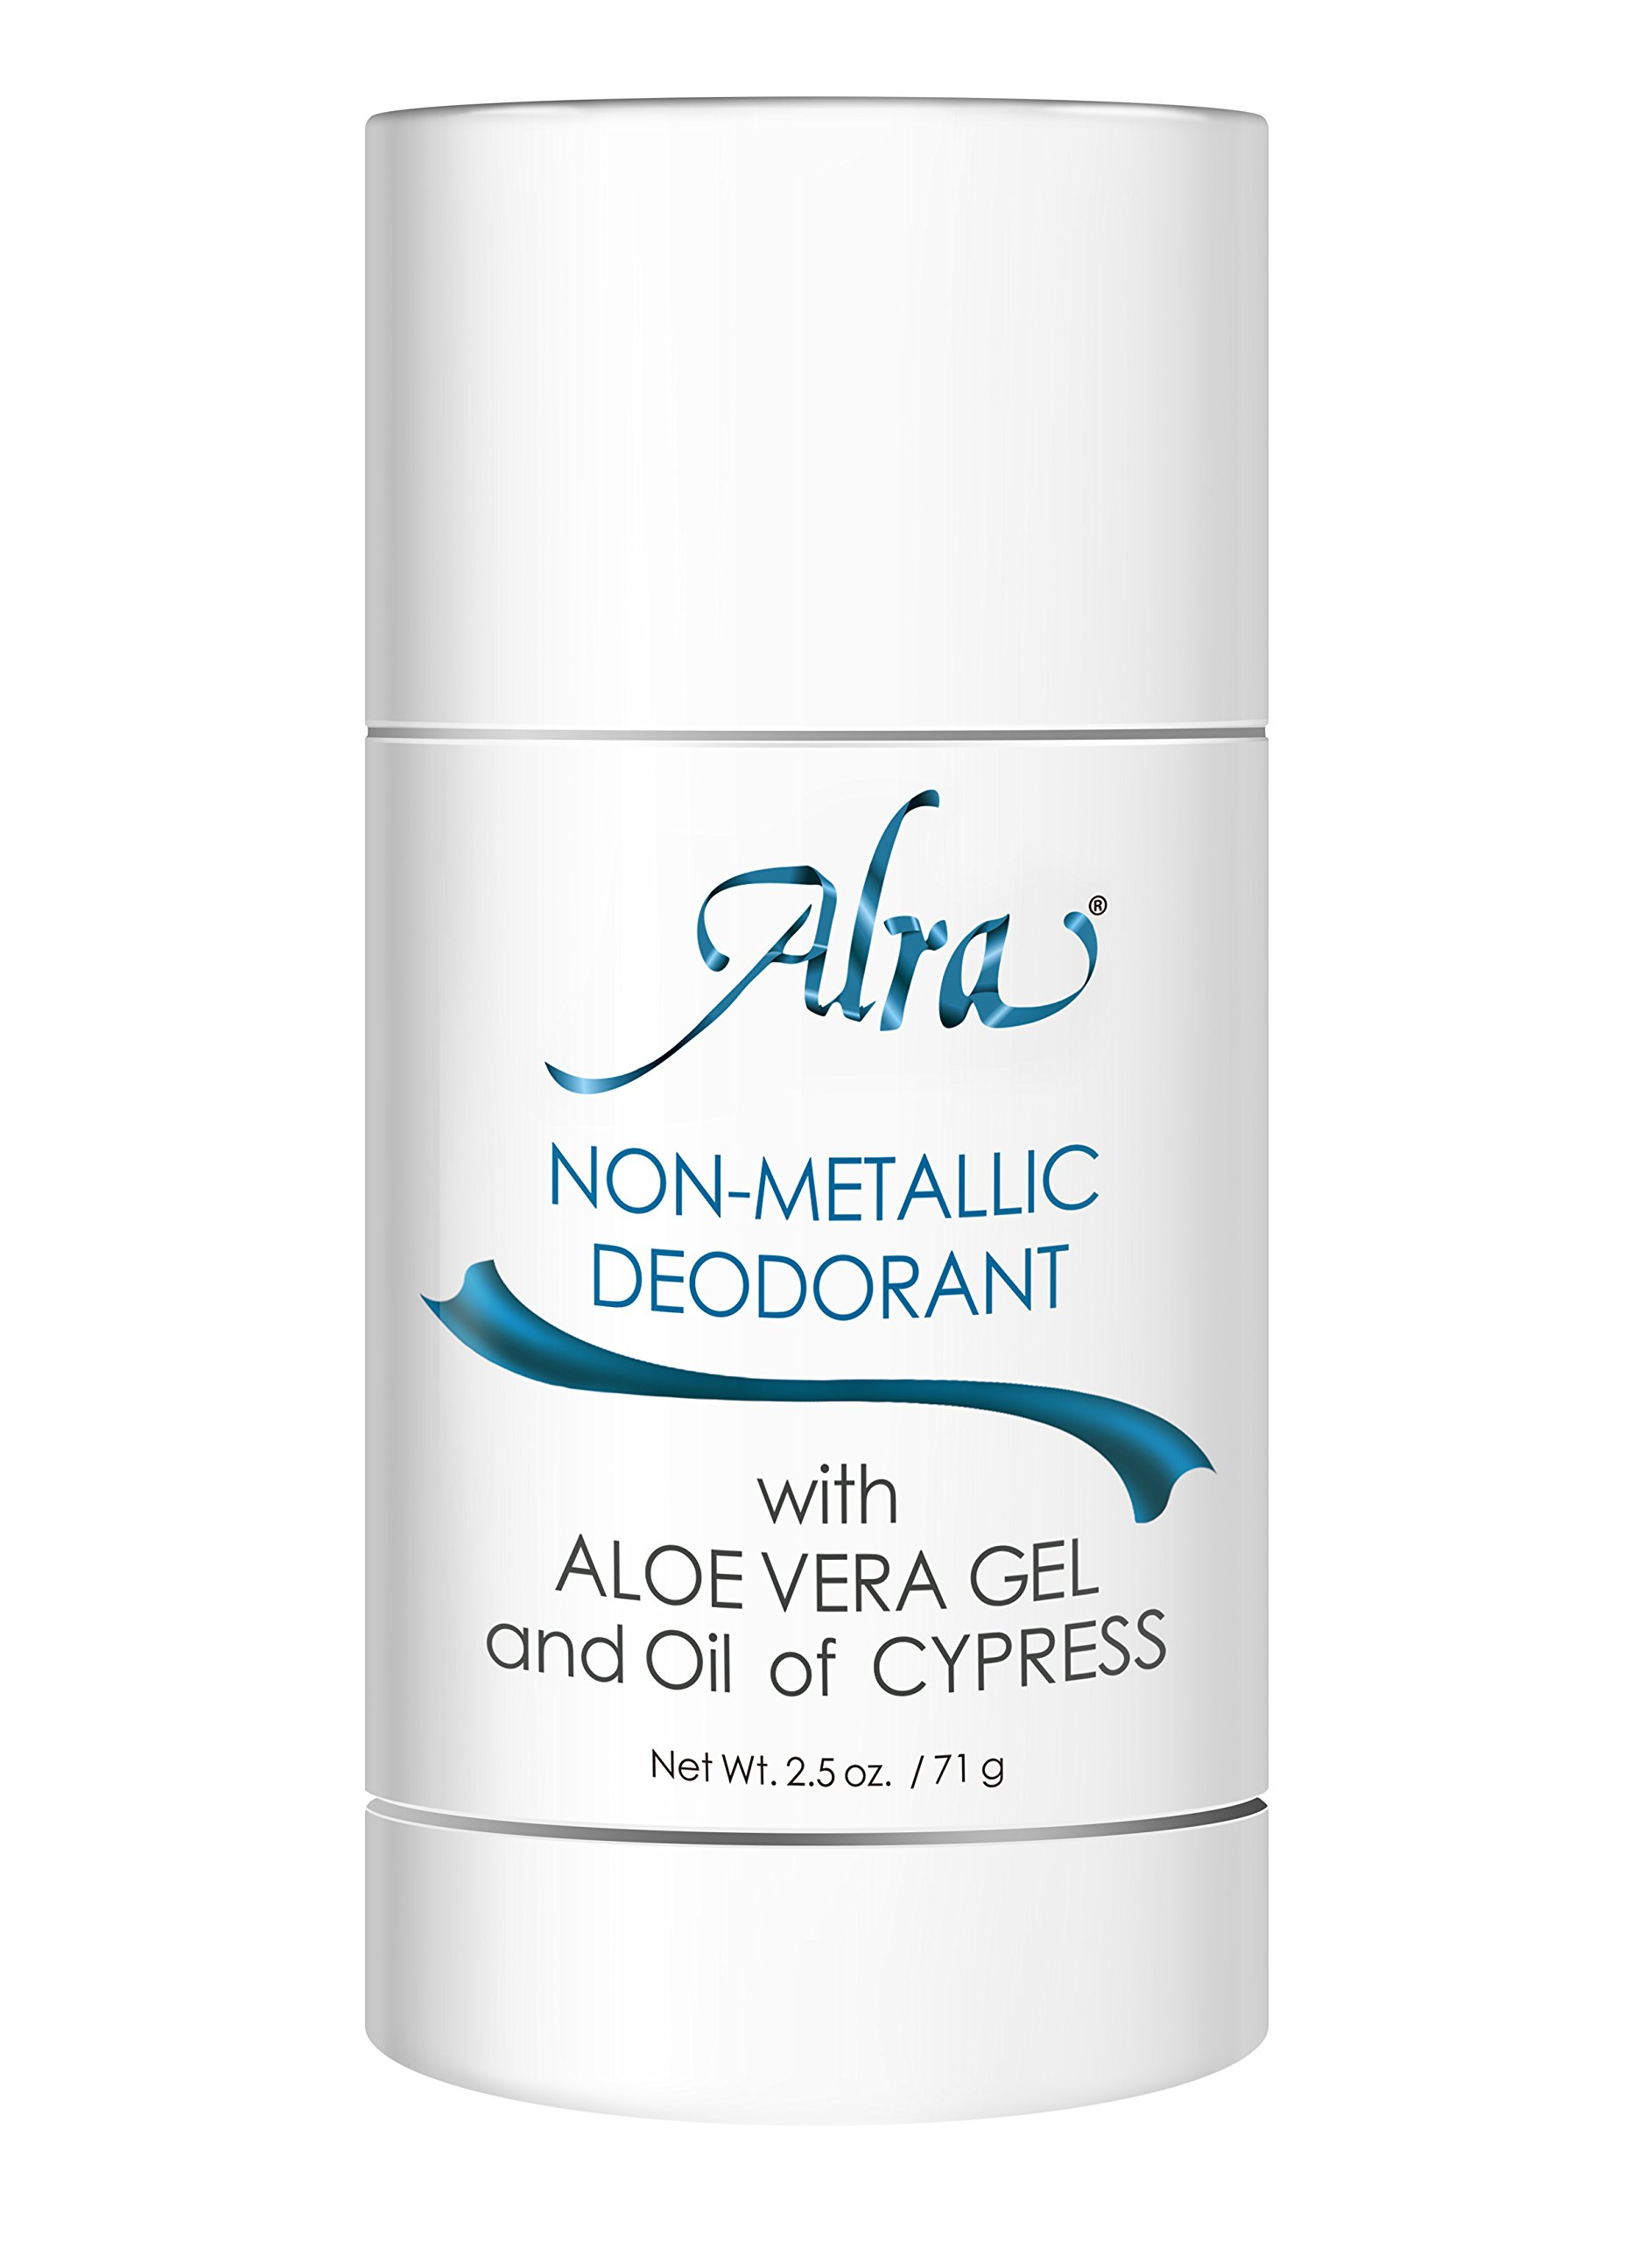 Alra - Non-Metallic Deodorant - Natural Odor and Wetness Protection - Acceptable for Cancer Patients Undergoing Chemotherapy and Radiation Treatments - Fragrance and Aluminum Free - 2.5 oz.